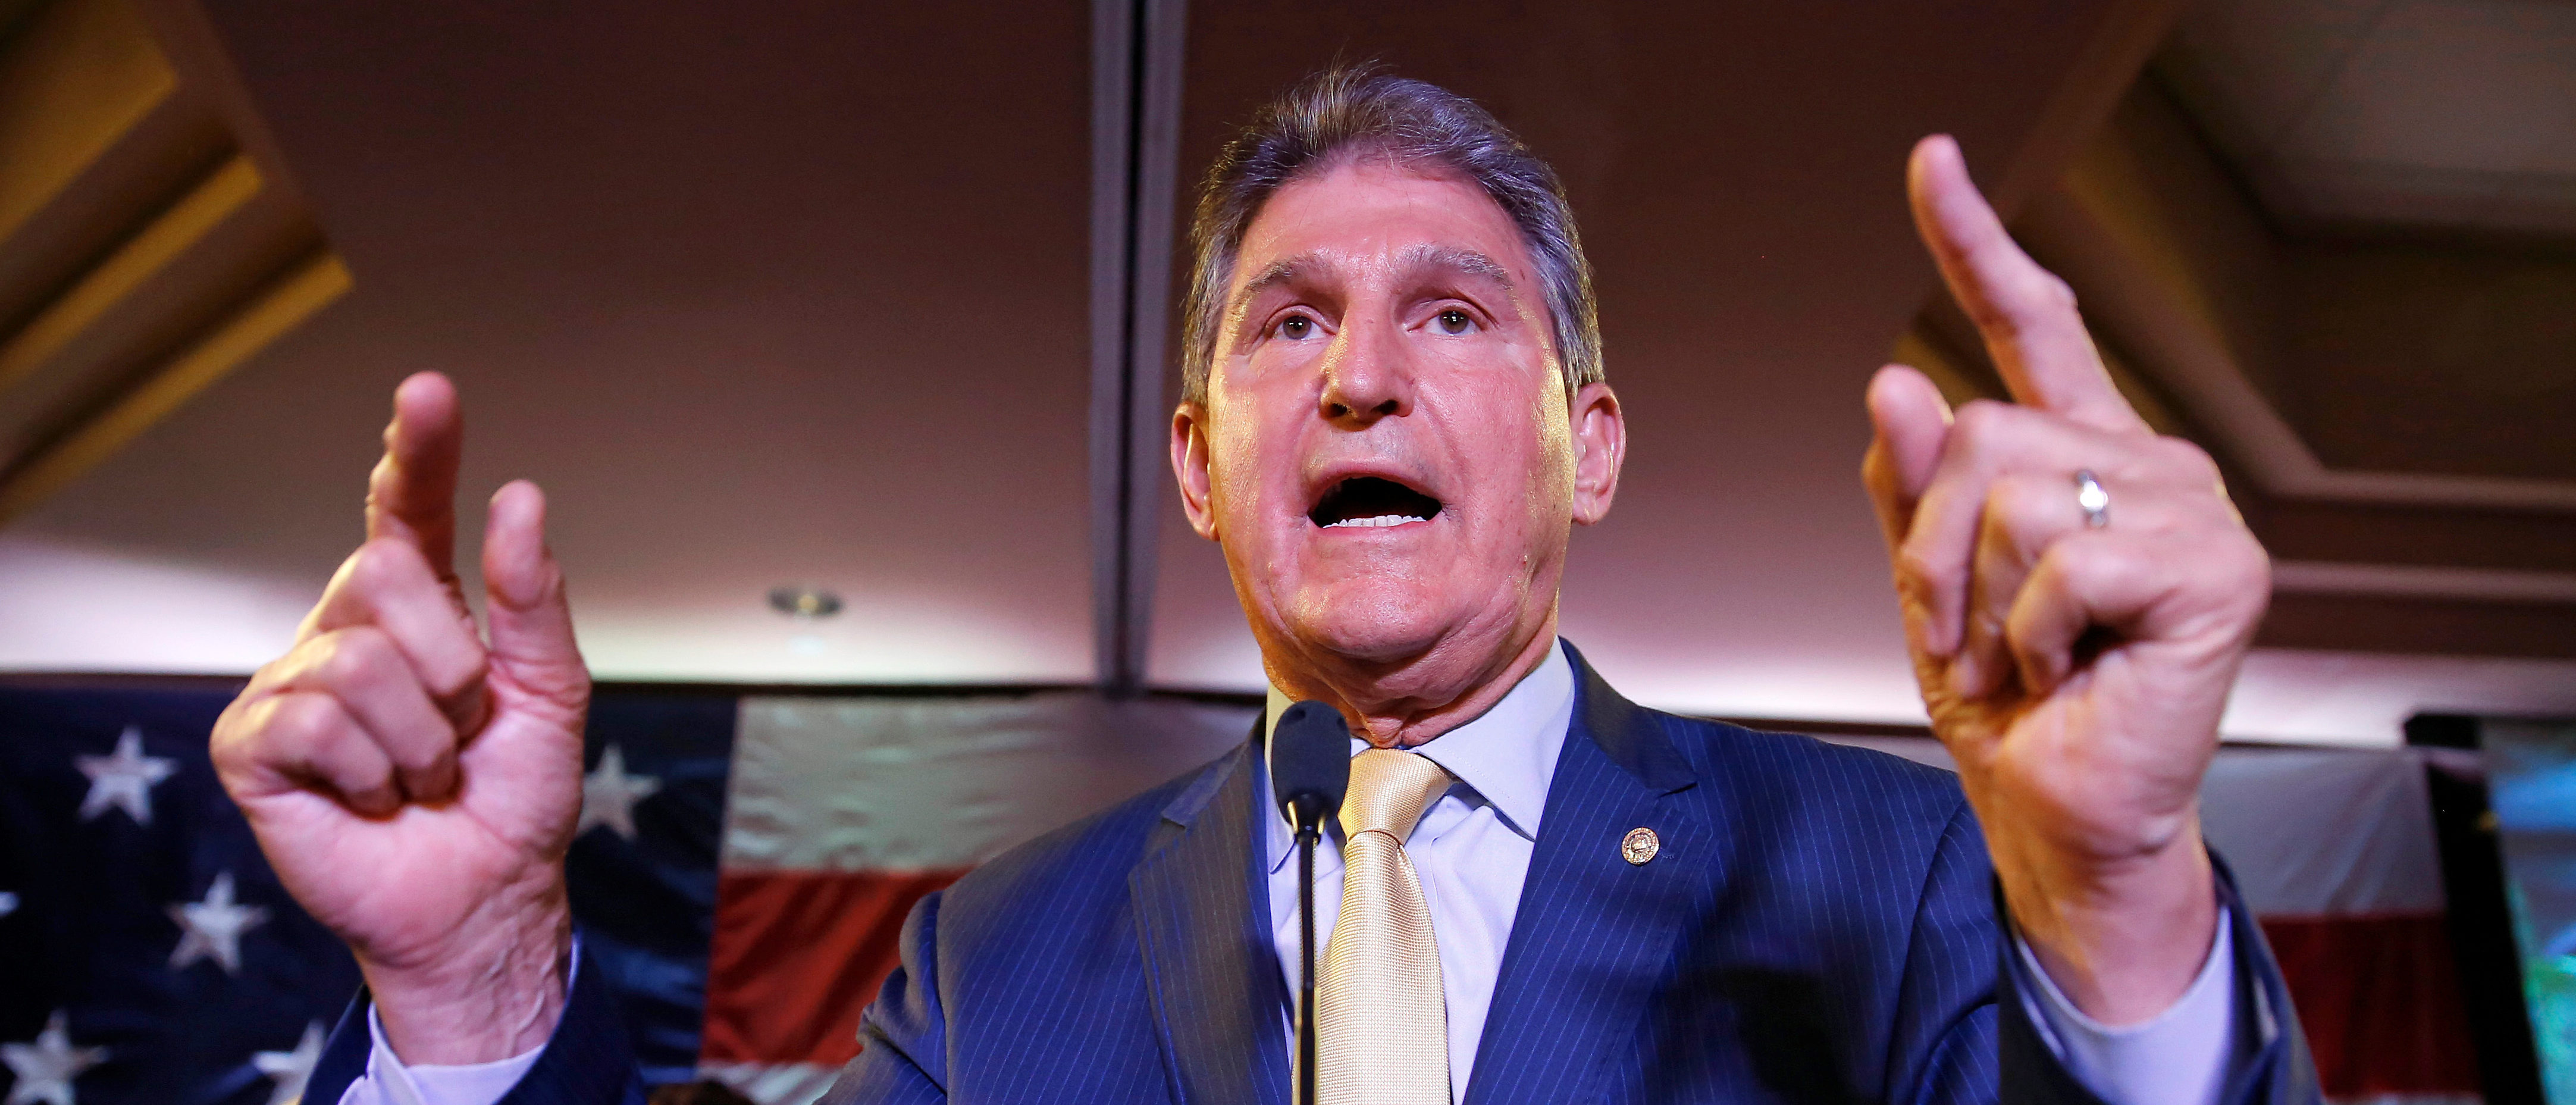 Senator Joe Manchin (D-WV) speaks after winning the 2018 midterm elections in Charlestown, West Virginia, U.S., November 6, 2018. REUTERS/Joshua Roberts.